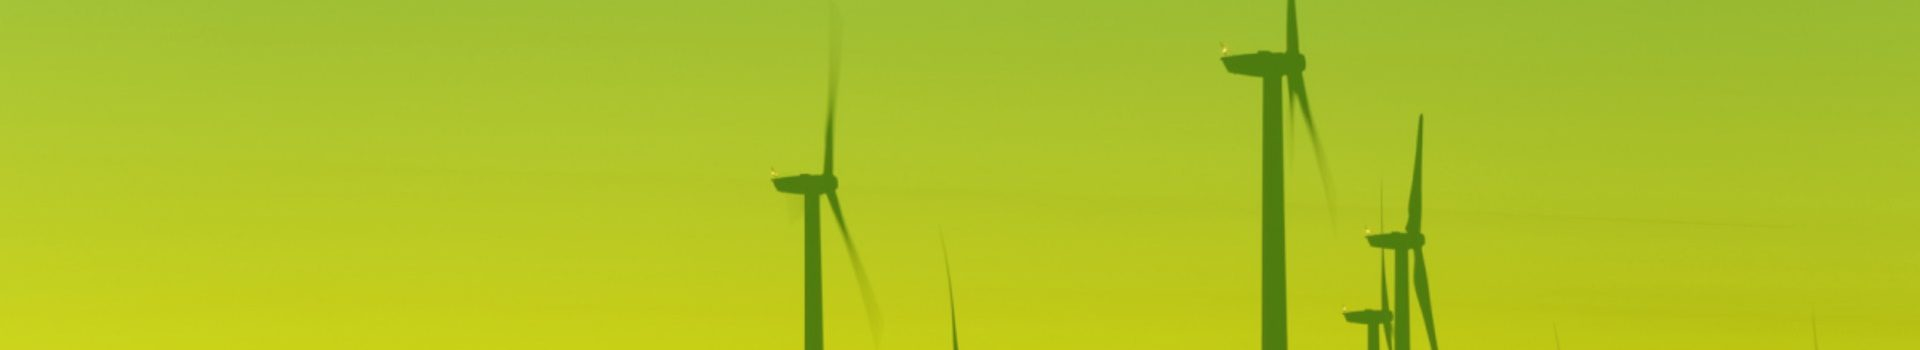 cropped-Header_BNK_Wind_Transponder_Technik_green.jpg